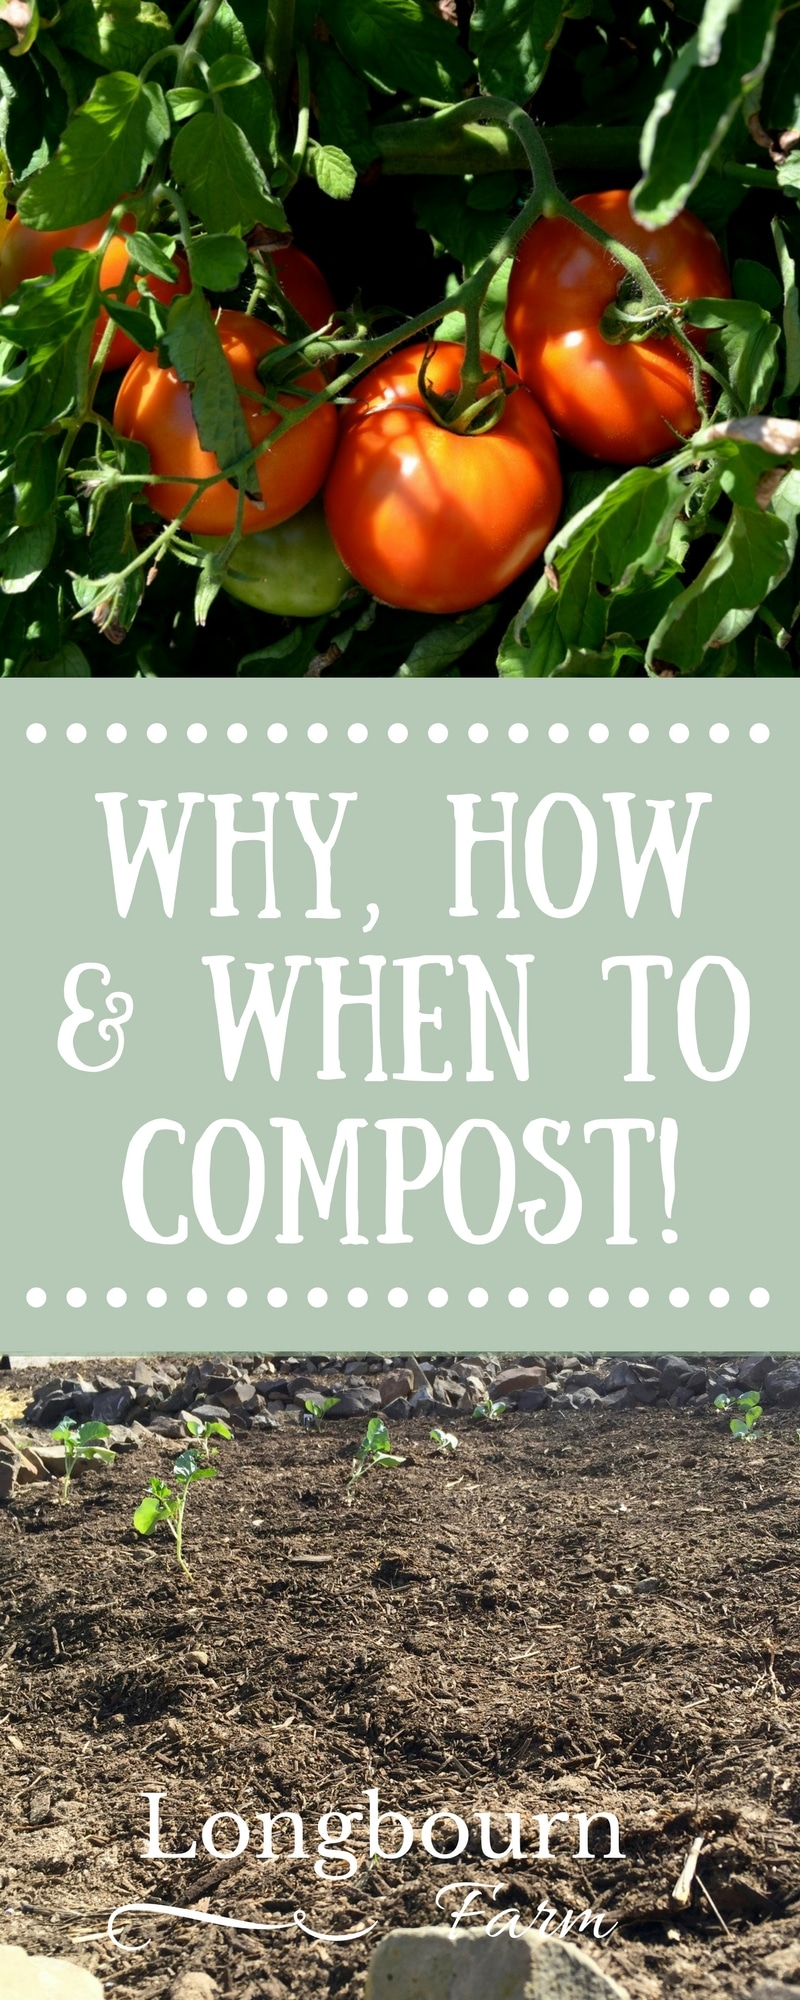 Check out this post to find out how to compost, why you should compost and when to add compost to your garden! Full of great gardening tips. via @longbournfarm